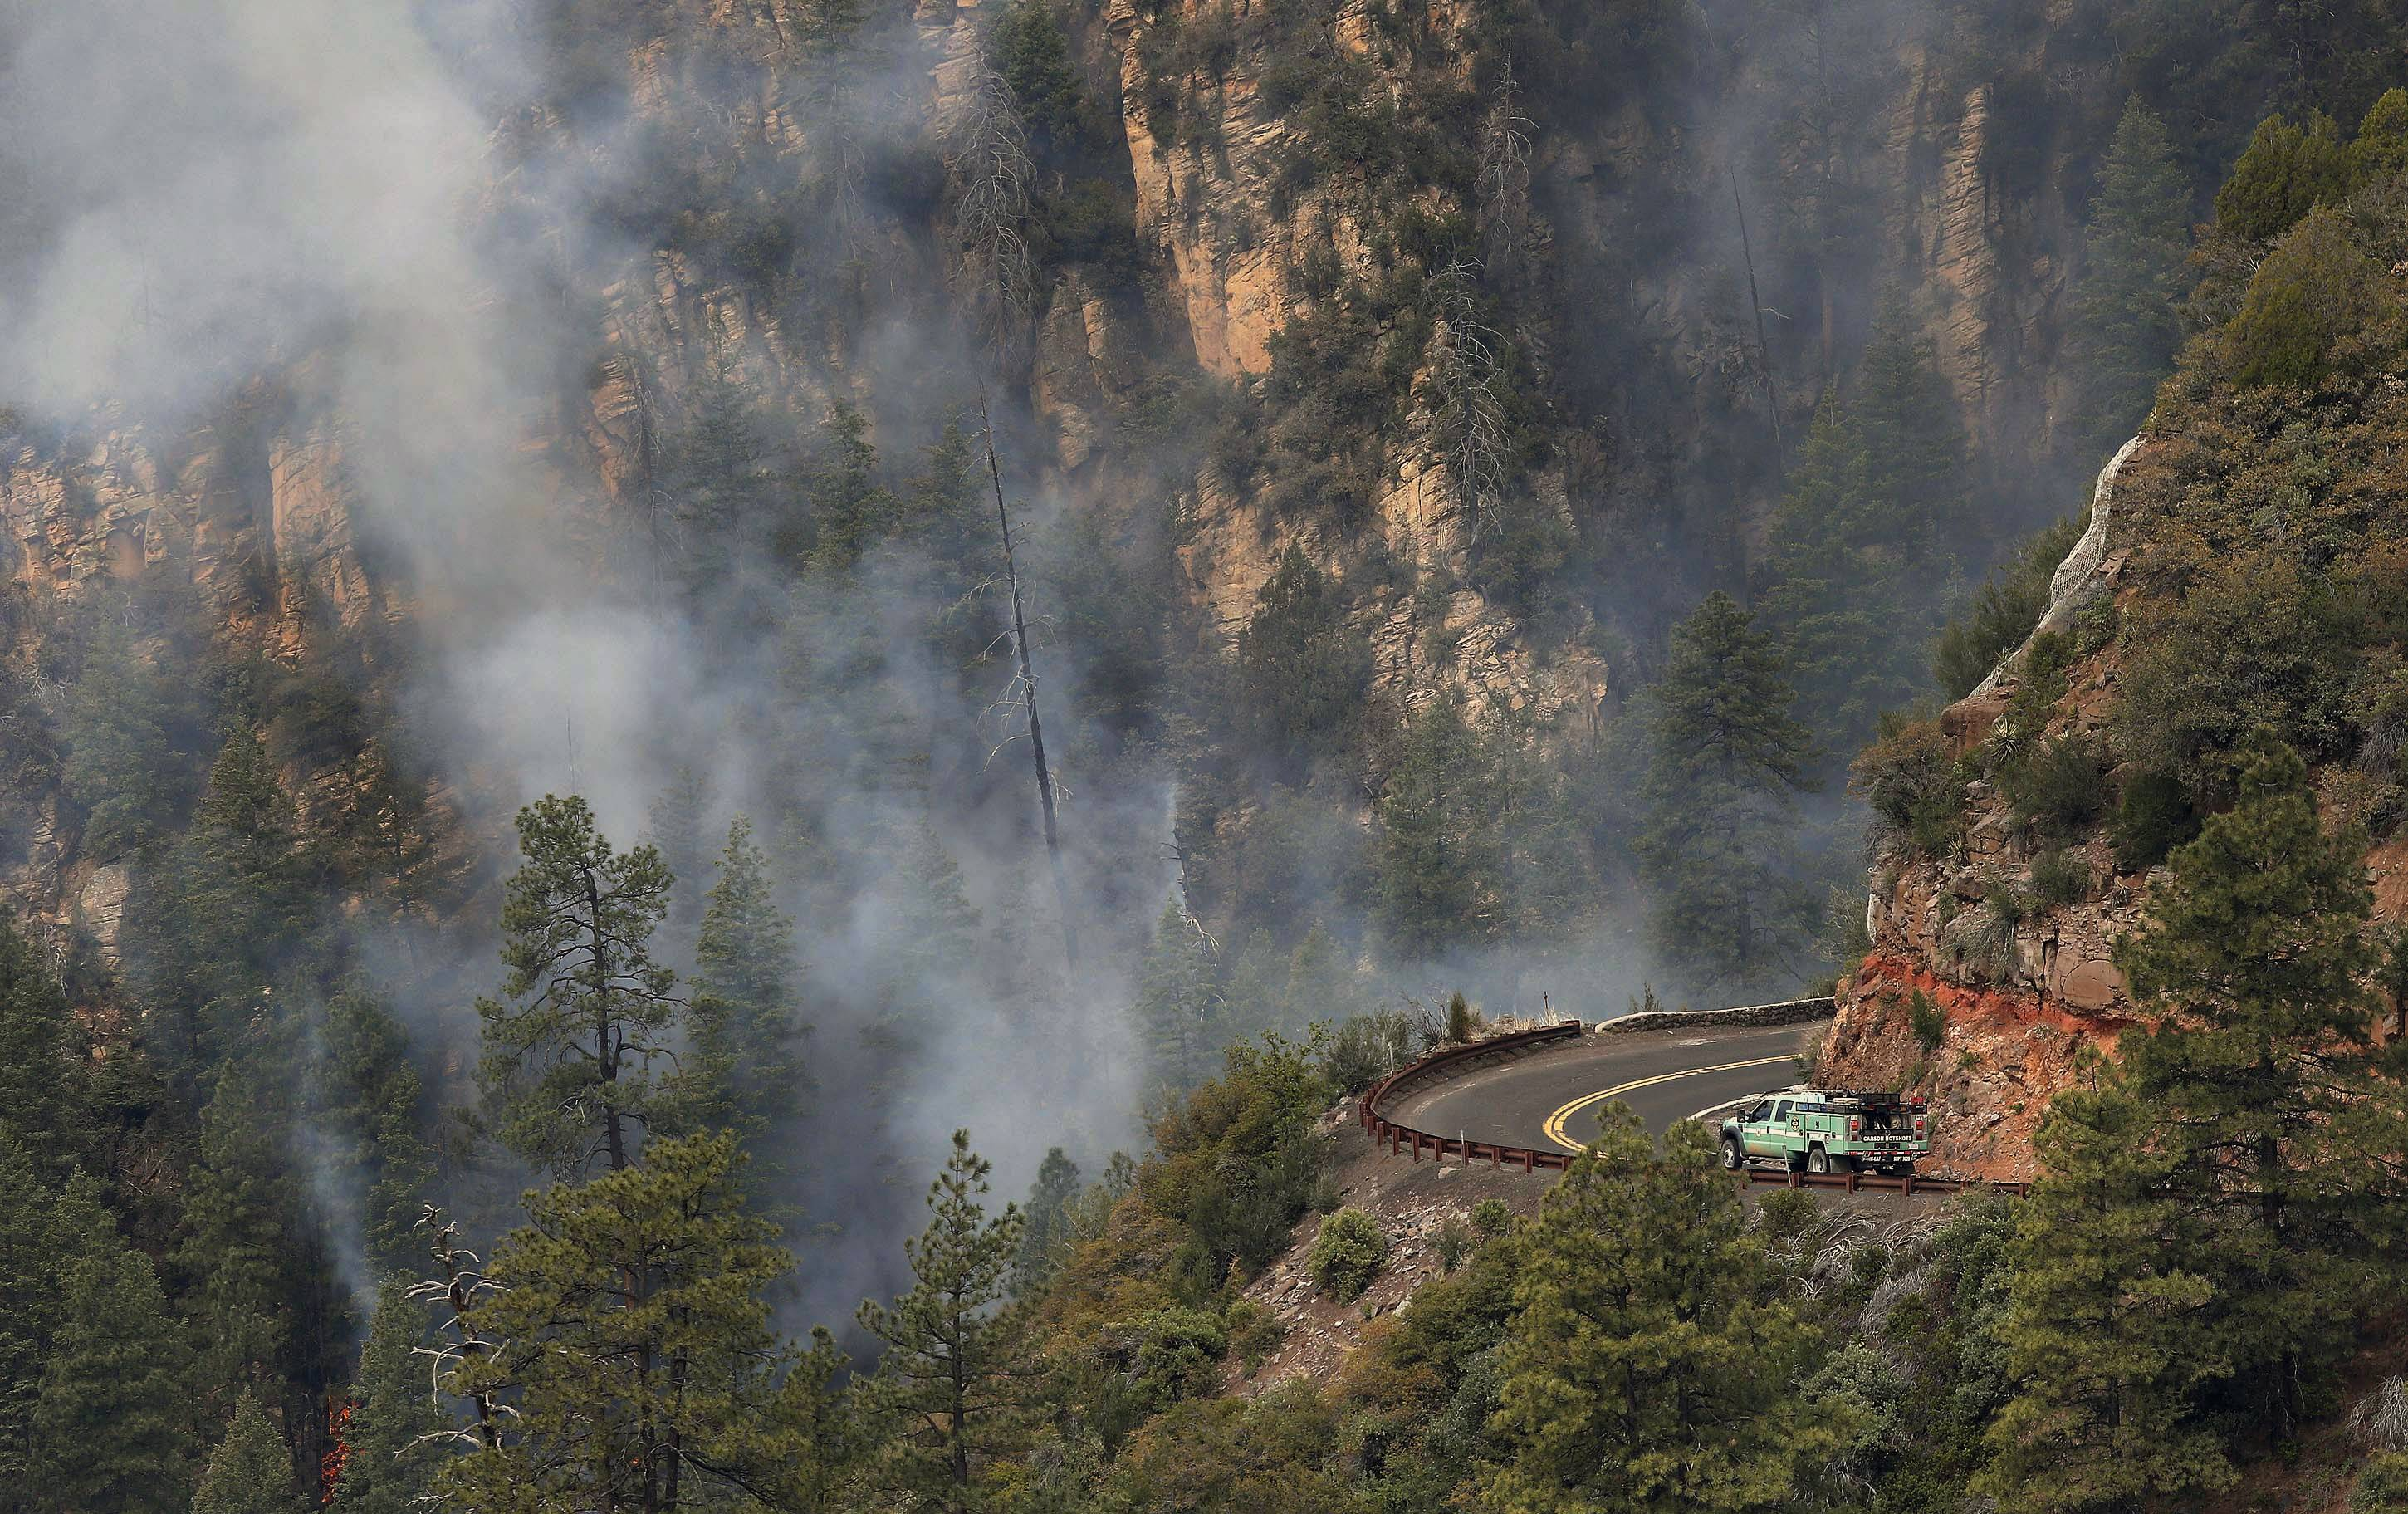 A truck drives along a road near the Slide Fire as it burns up Oak Creek Canyon nearby on Friday, May 23, near Flagstaff, Ariz. The fire has burned approximately 7,500 acres.